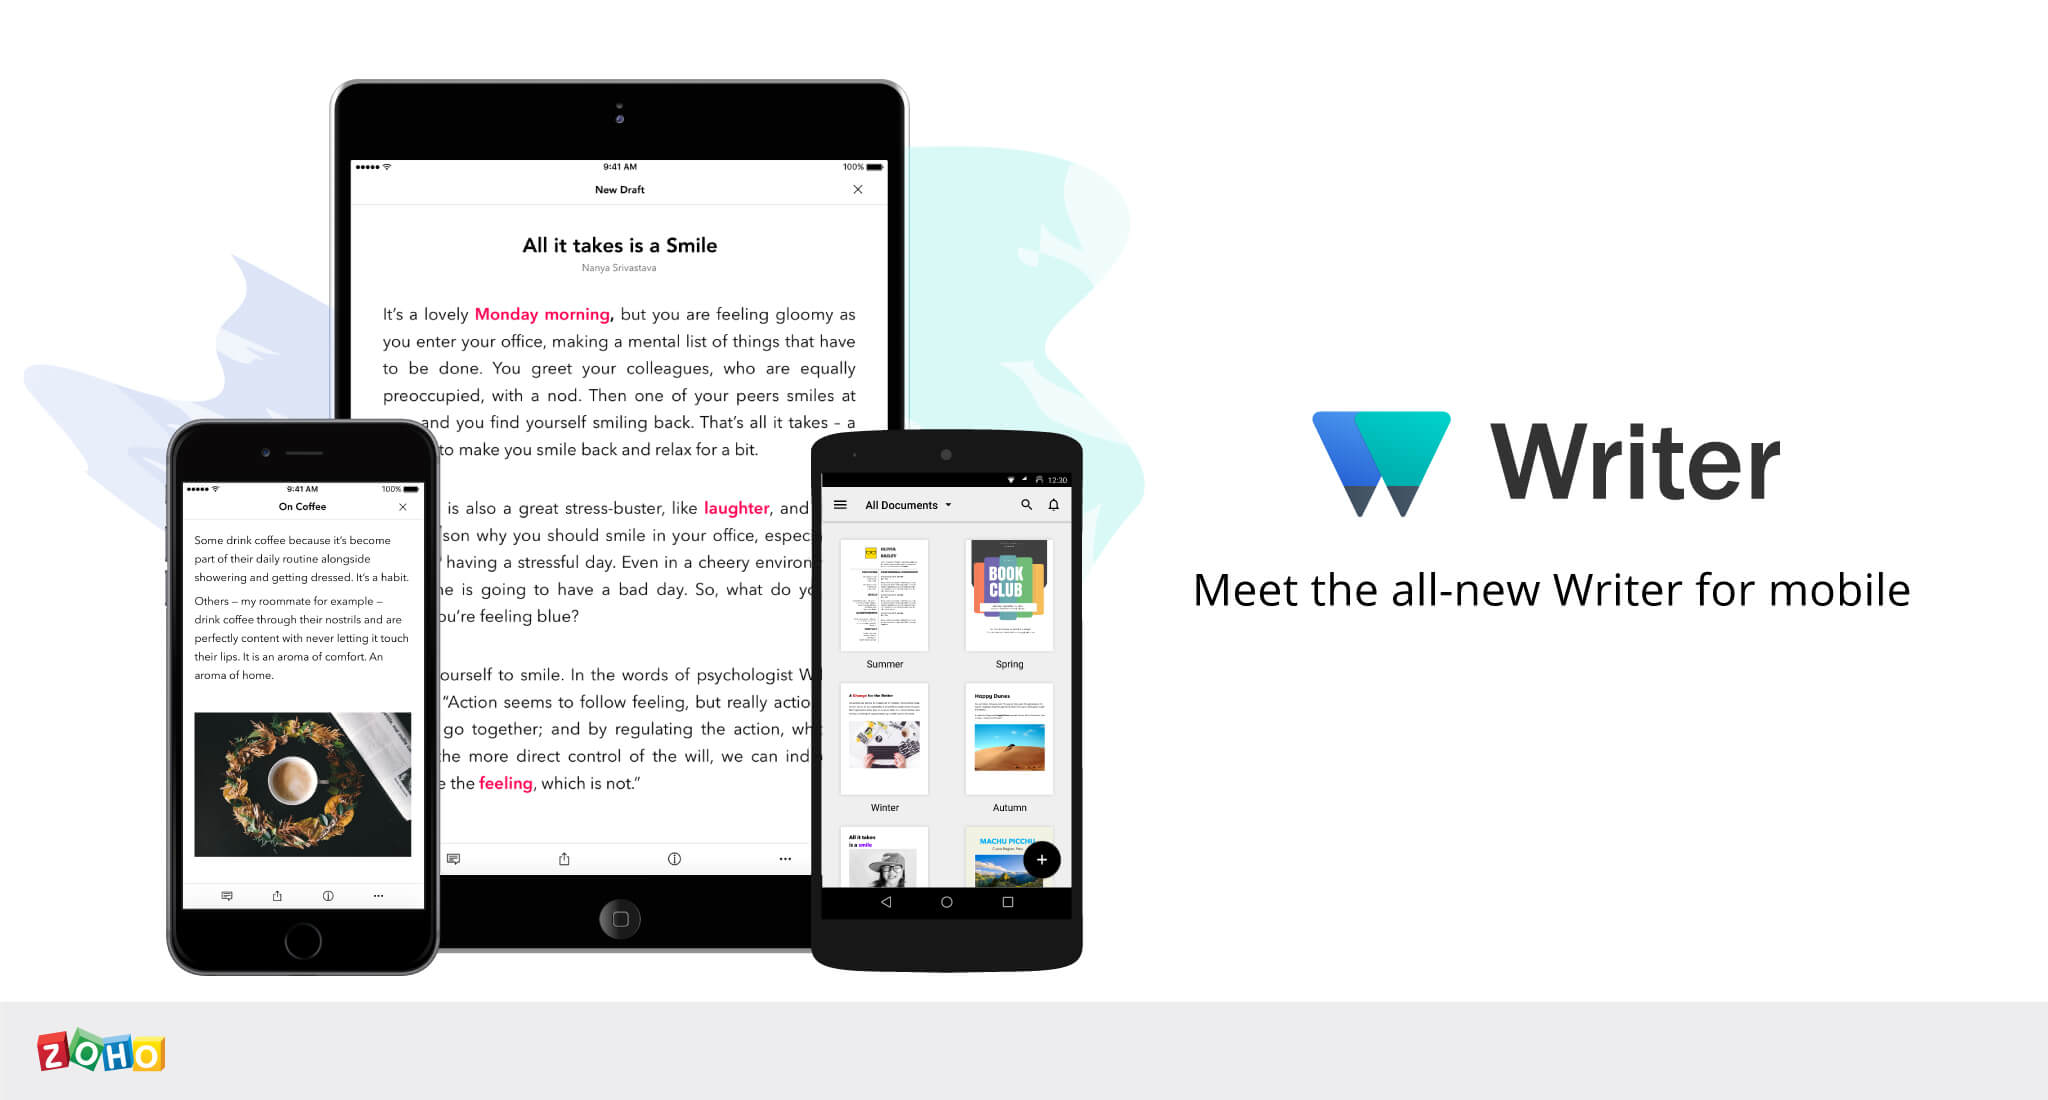 Introducing the All-new Writer for Mobile: A Big Leap Forward